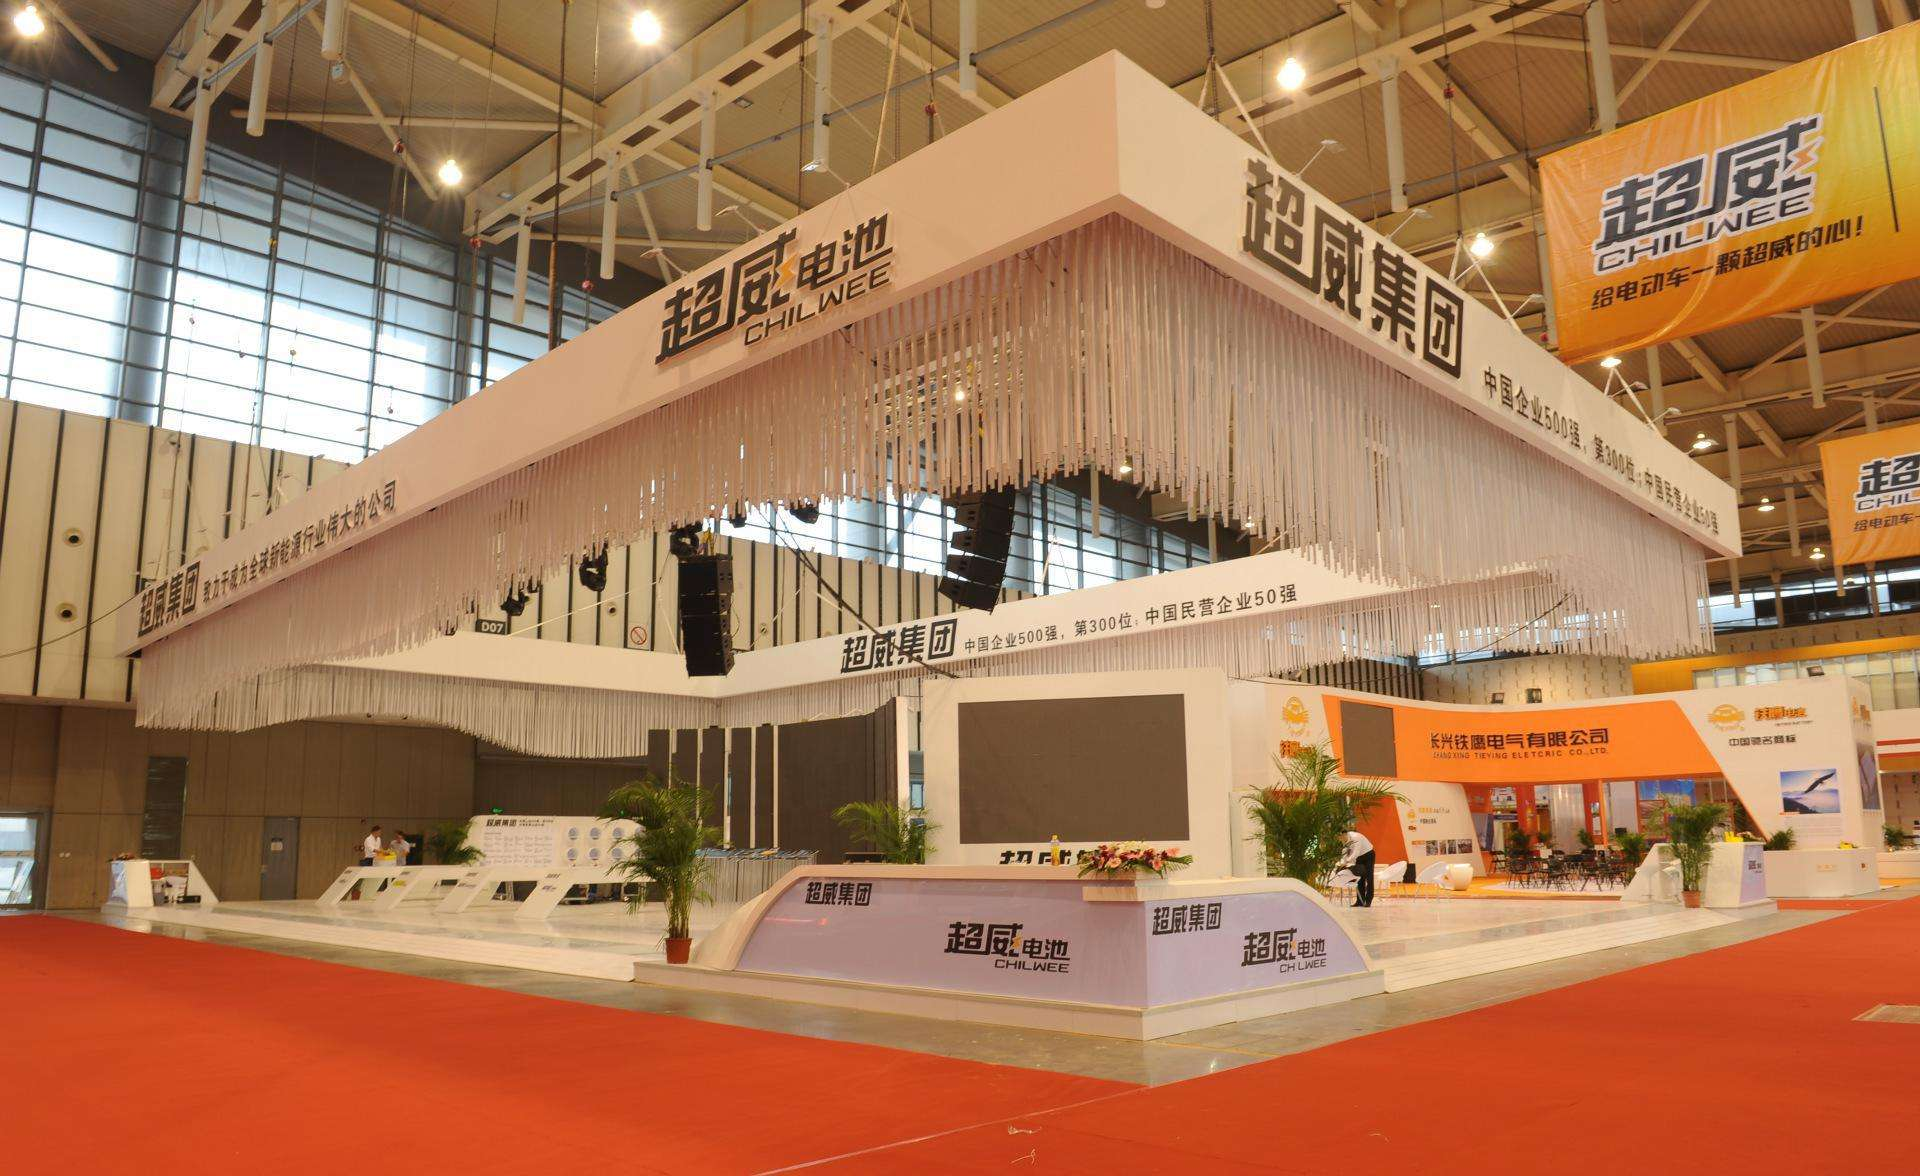 The 16th World Pharmaceutical Raw Materials China Exhibition was successfully concluded